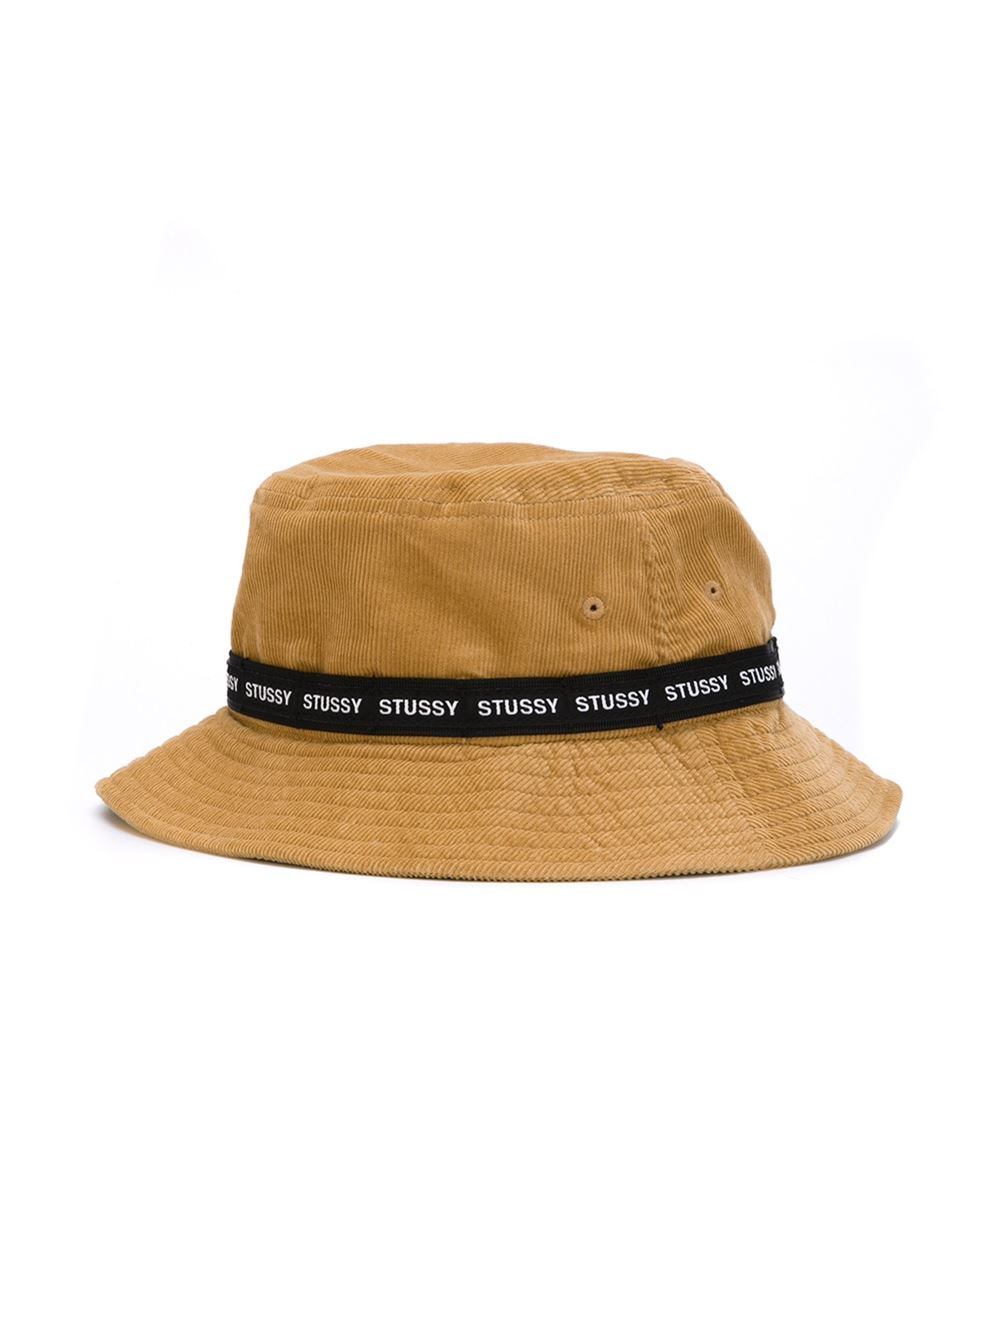 Lyst - Stussy Logo Band Corduroy Bucket Hat in Natural for Men fb22dee1a7aa